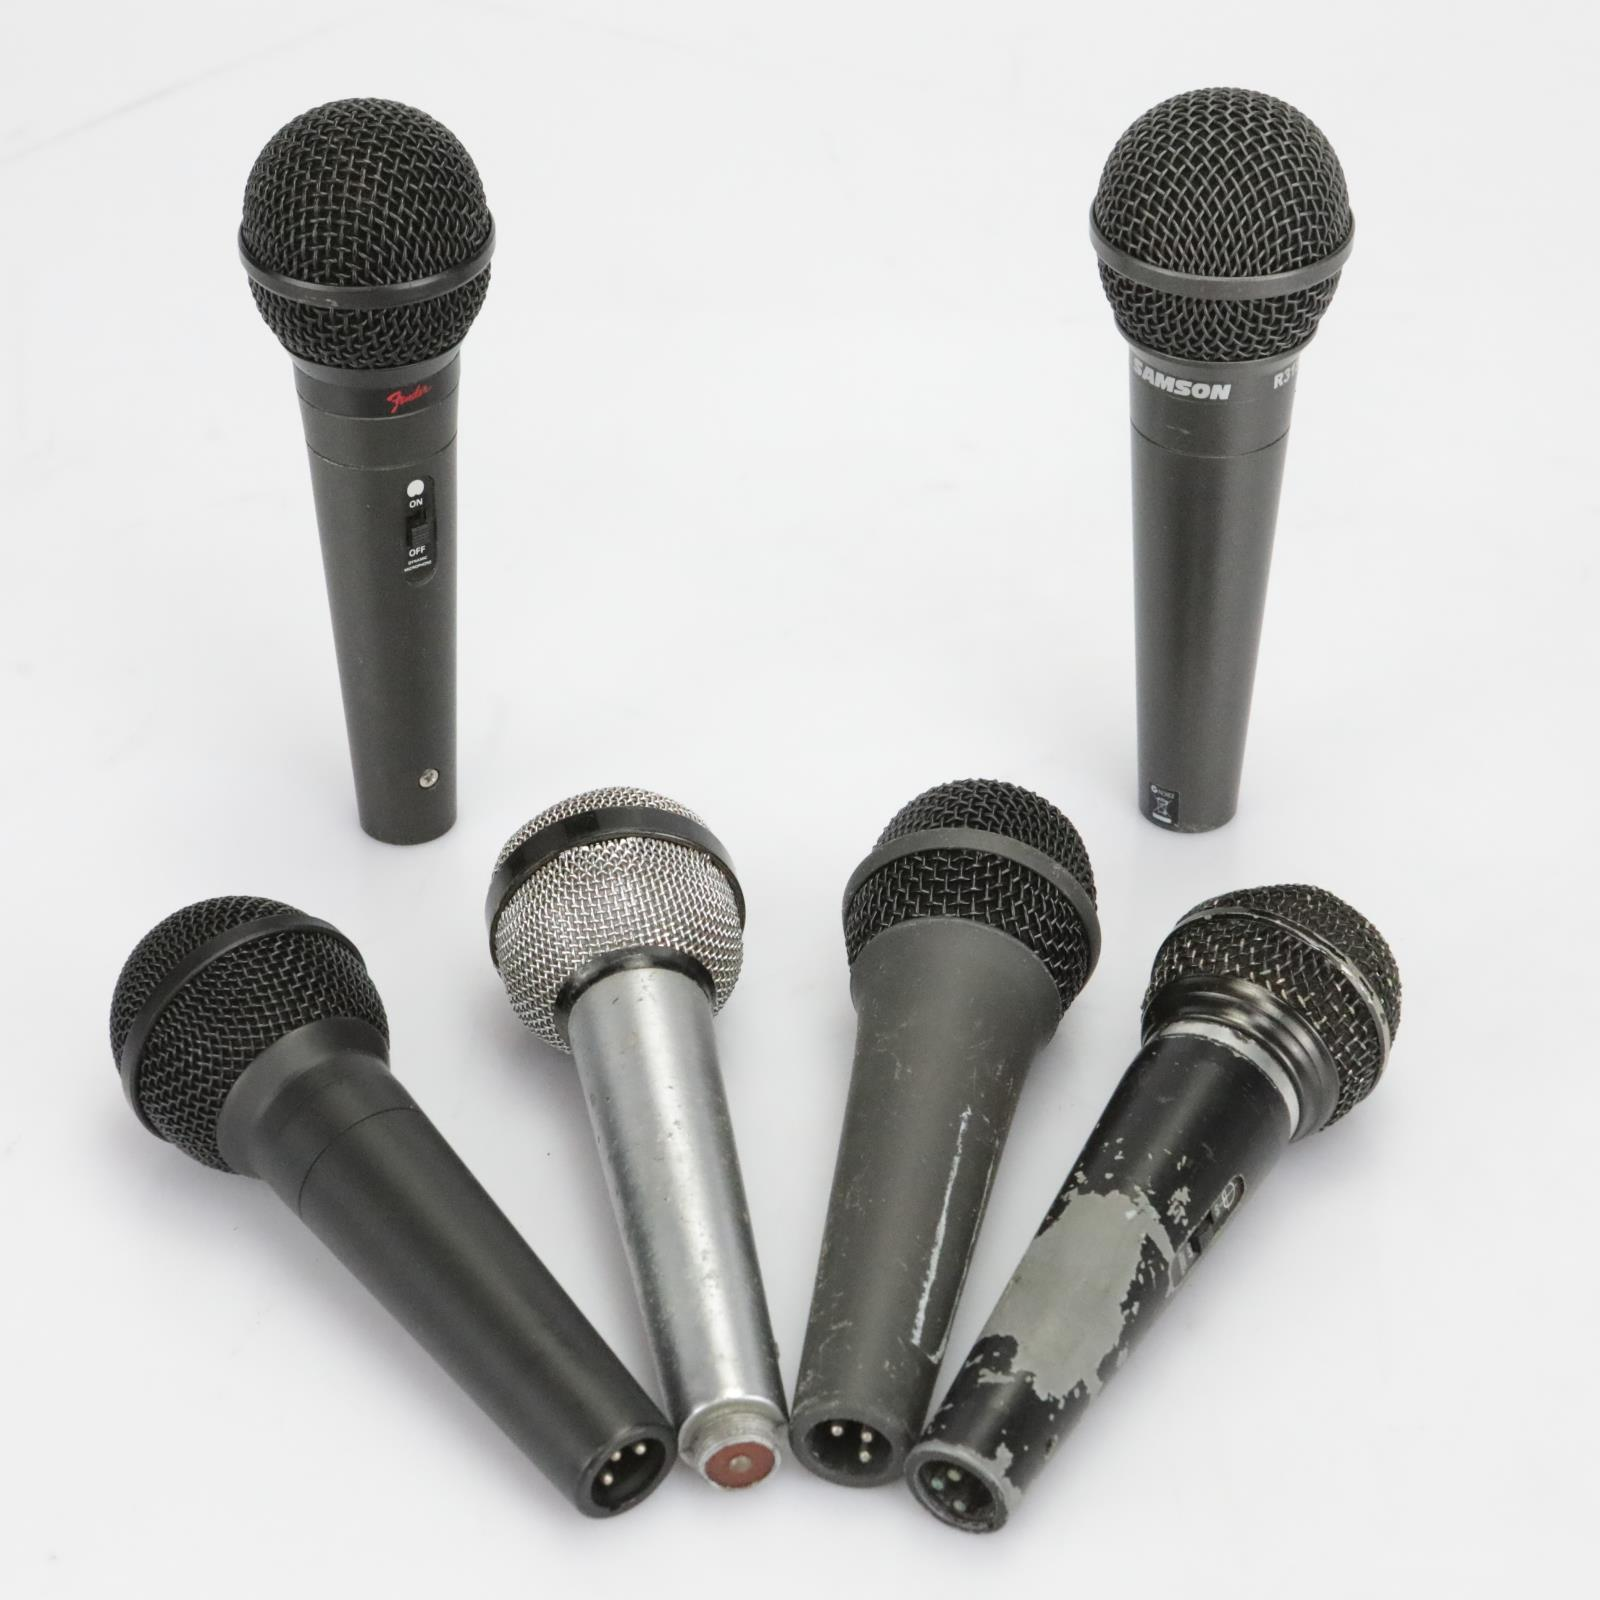 Samson R31S Fender P-51 Plus 4 More Dynamic Microphones Mics #40118